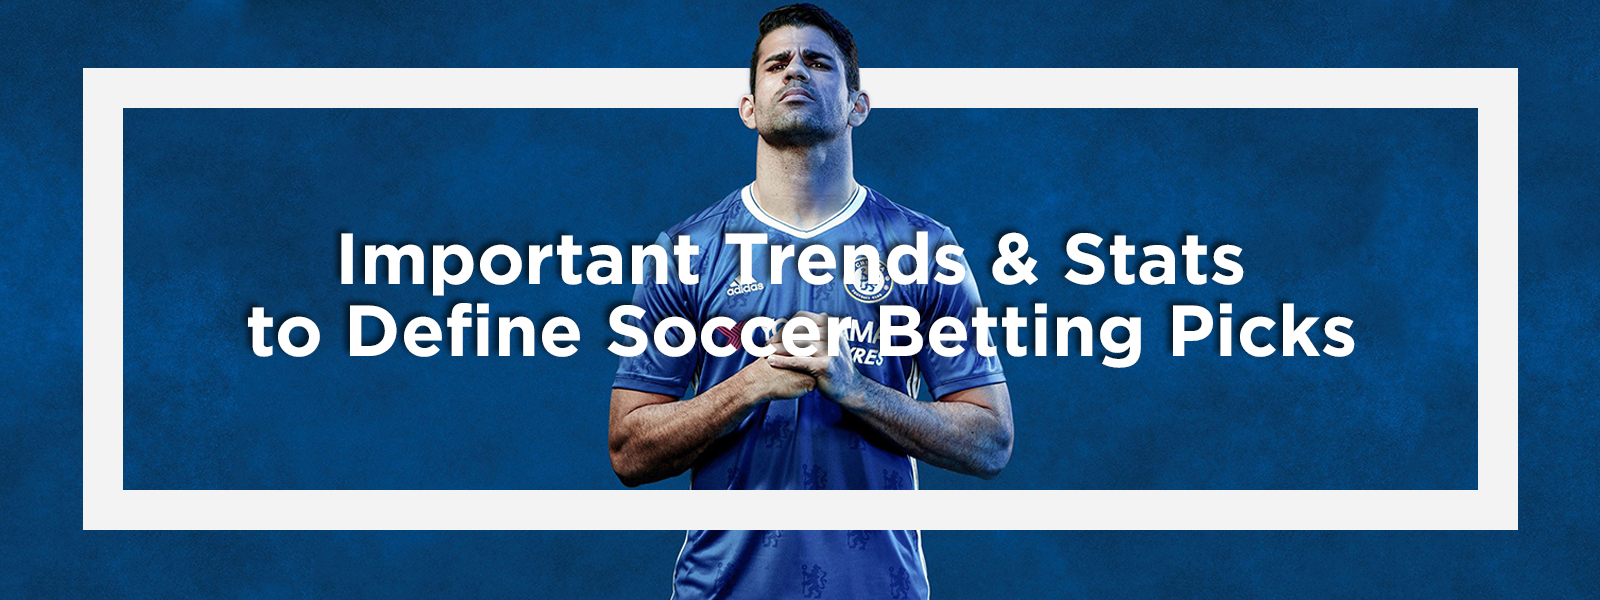 Importance Of Trends & Stats To Define Soccer Betting Picks